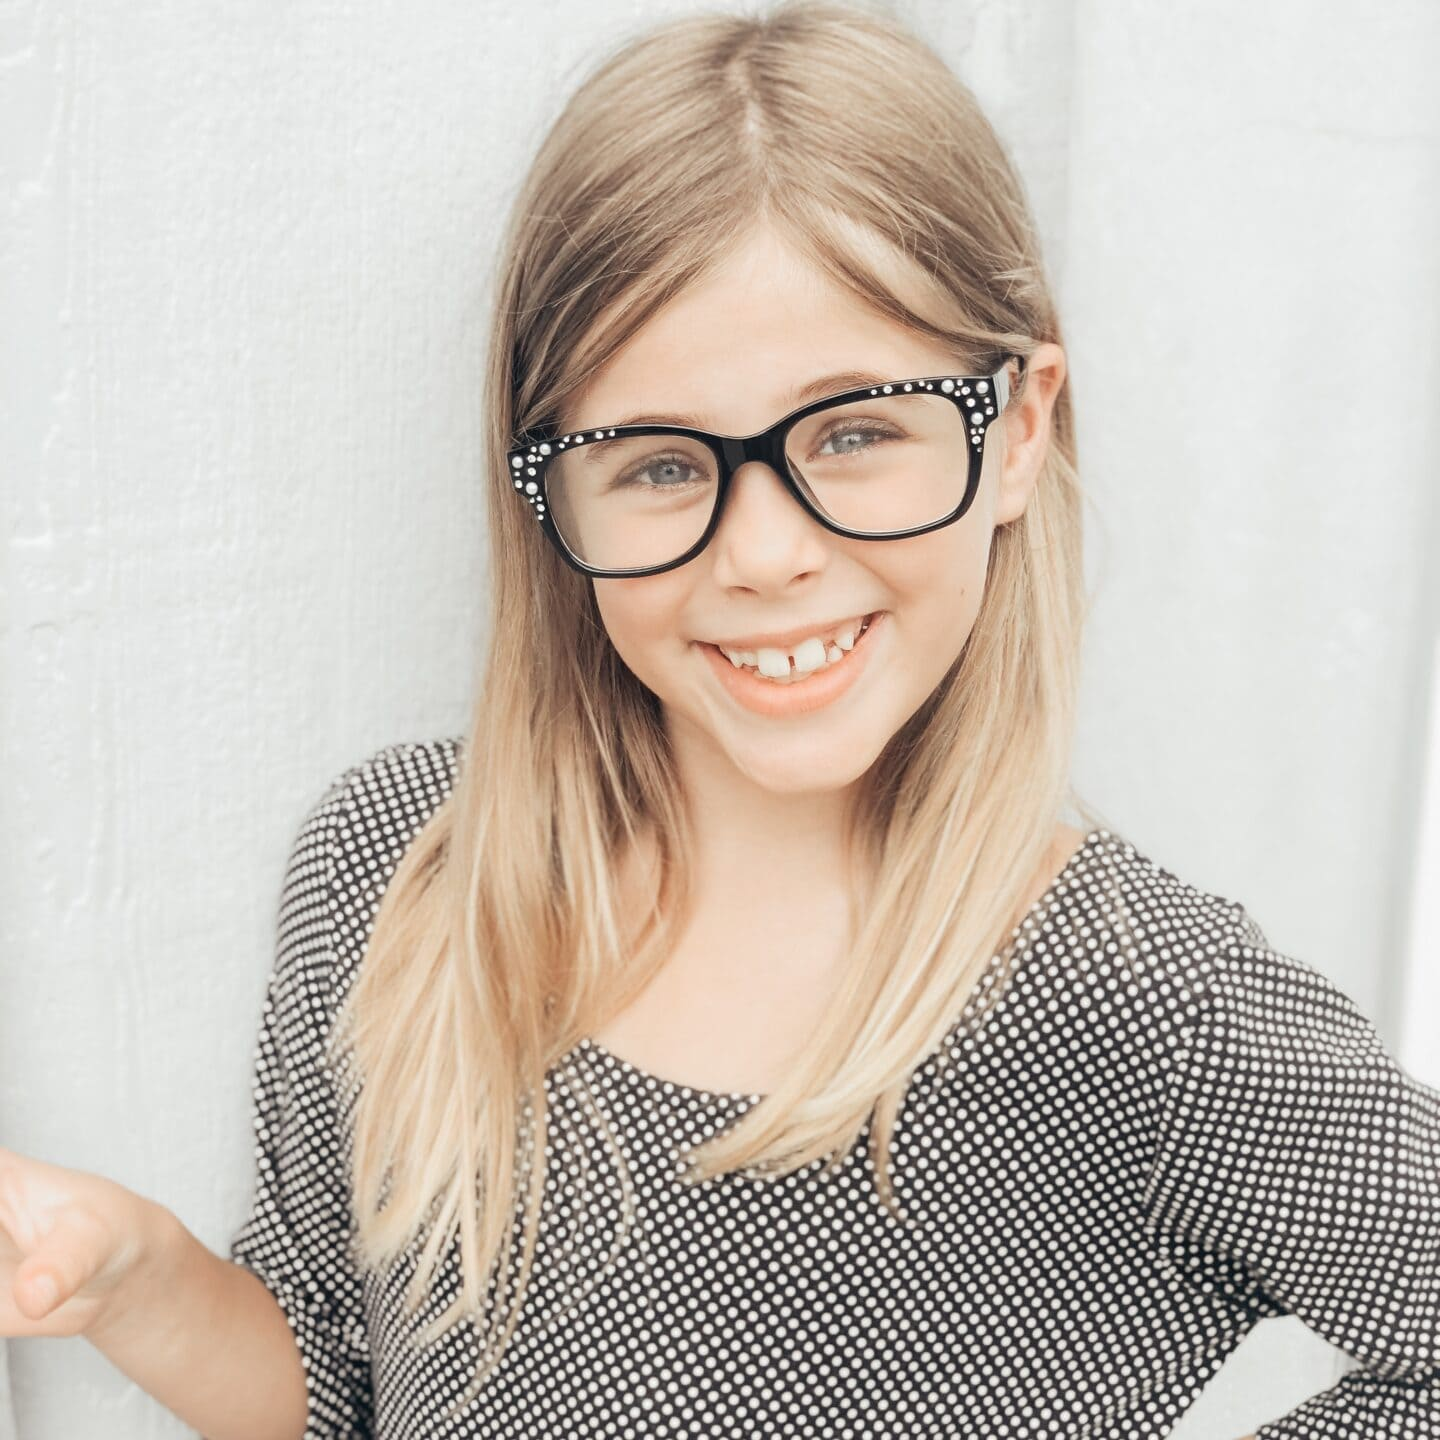 Britt and Her Glasses – The Placebo Effect as a Parenting Tool.